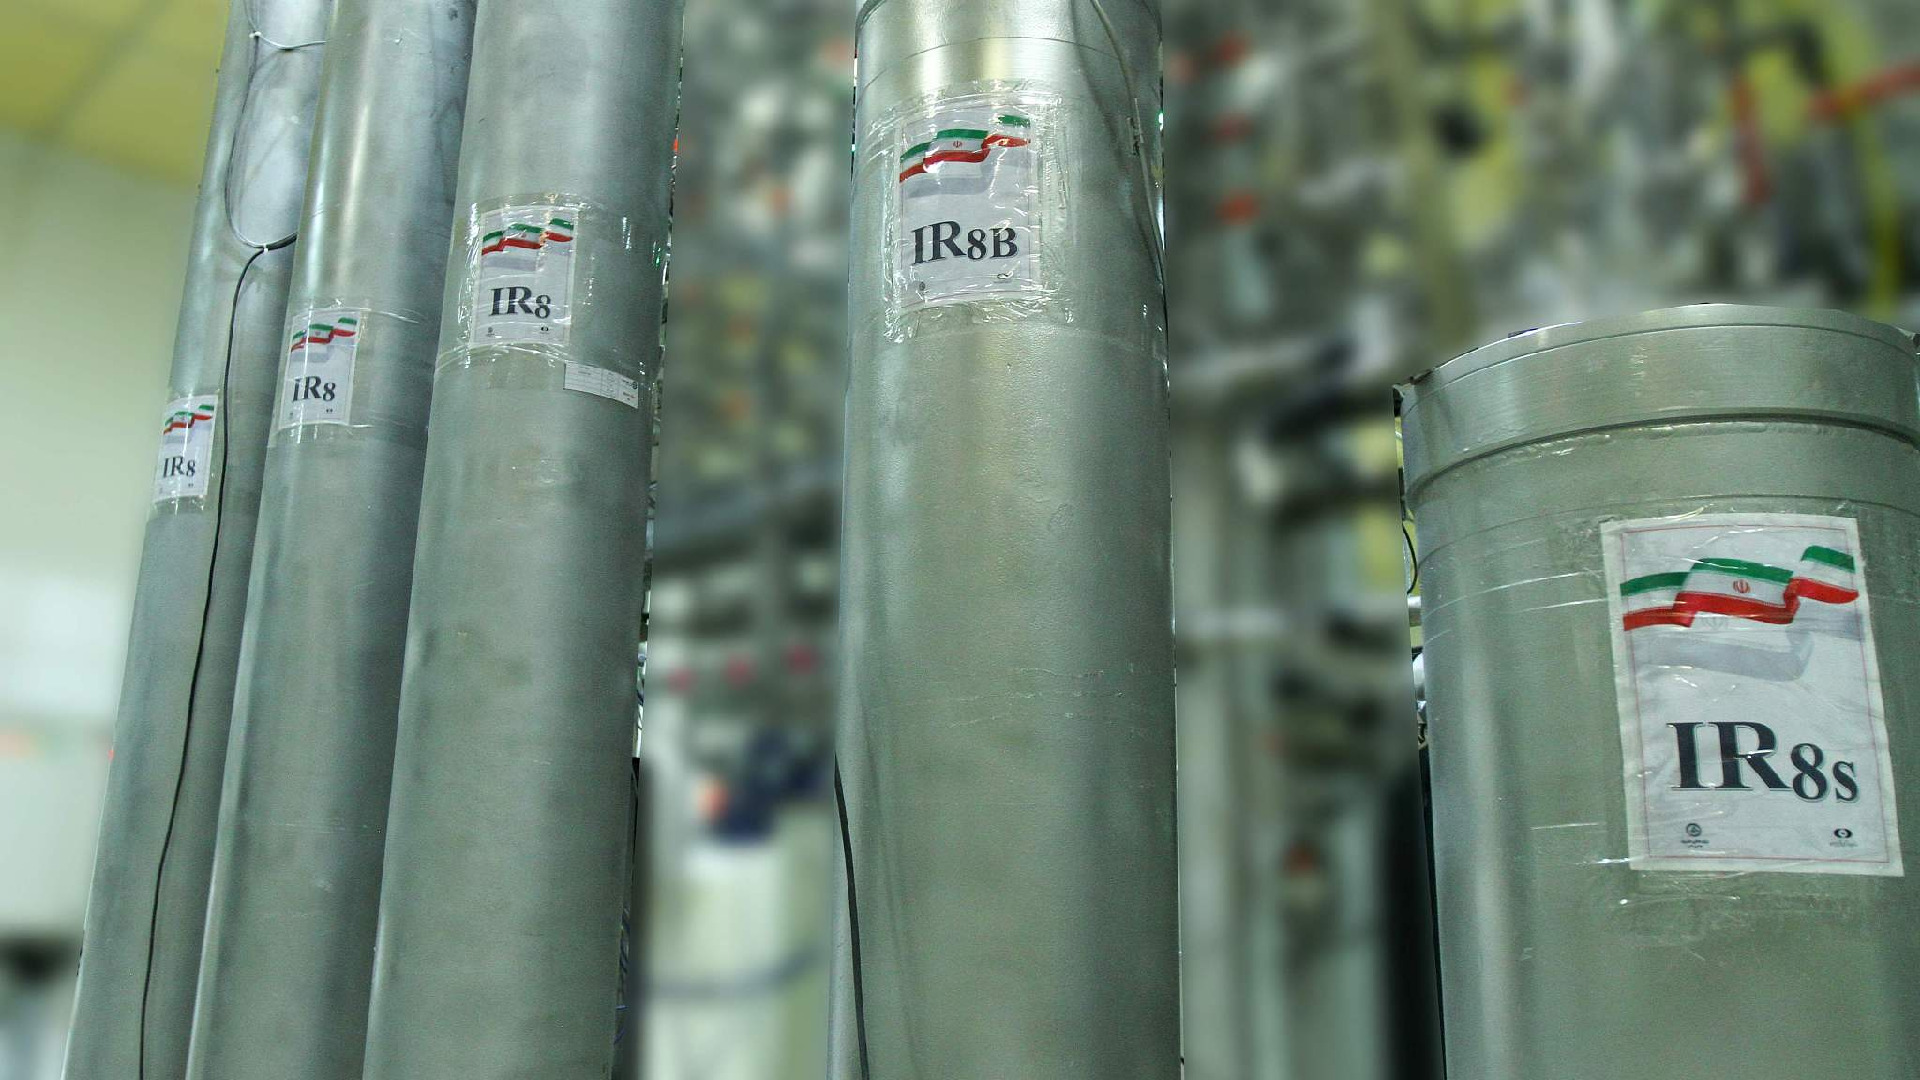 Iran Says It Will Soon Produce Enriched Uranium Metal